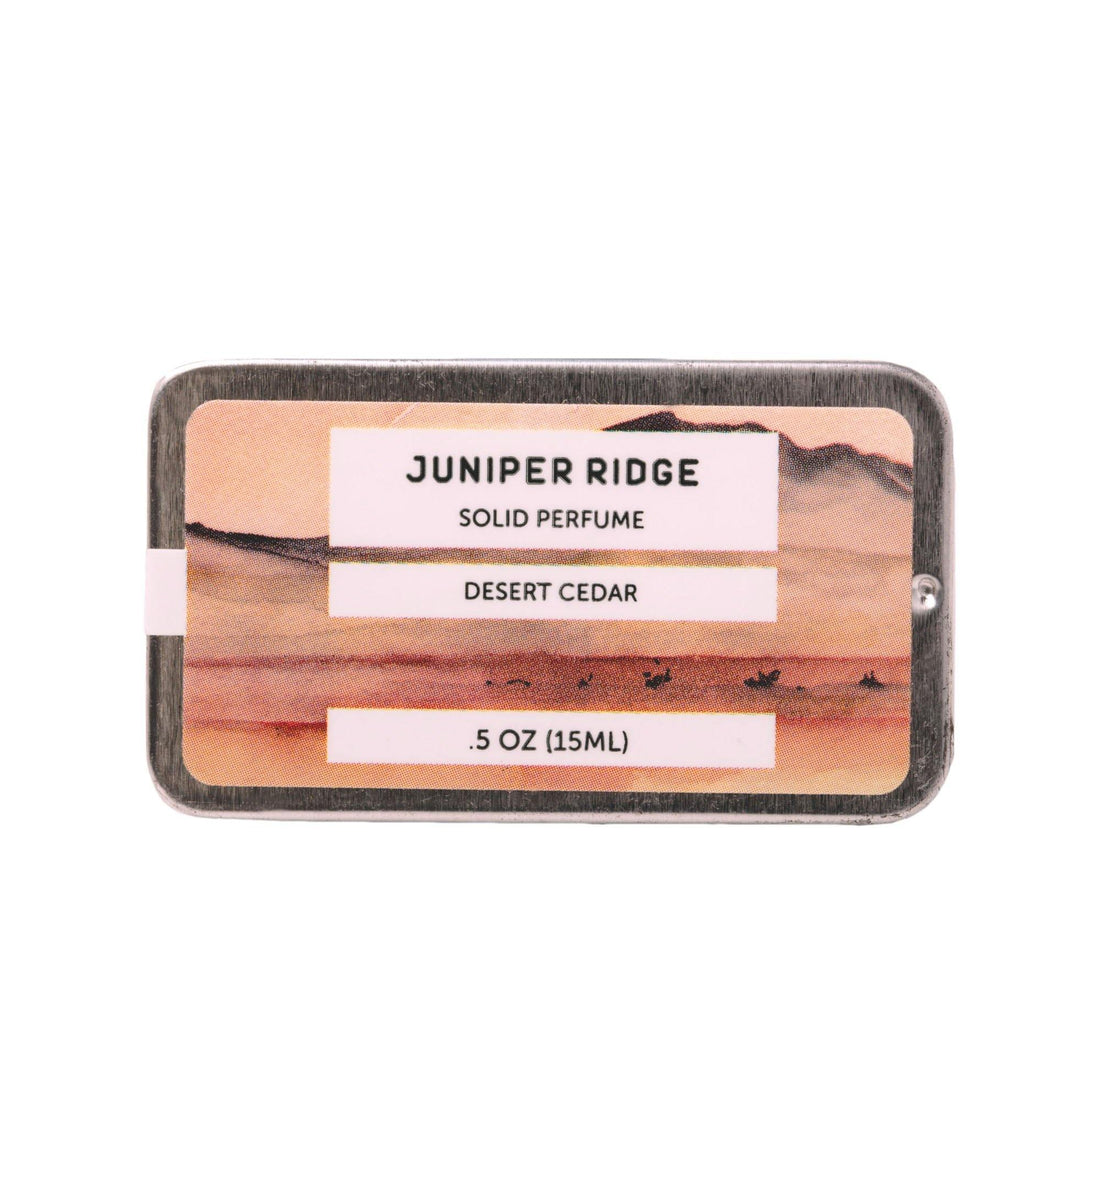 Juniper Ridge Solid Perfume - Desert Cedar - .5oz - Grooming - Iron and Resin